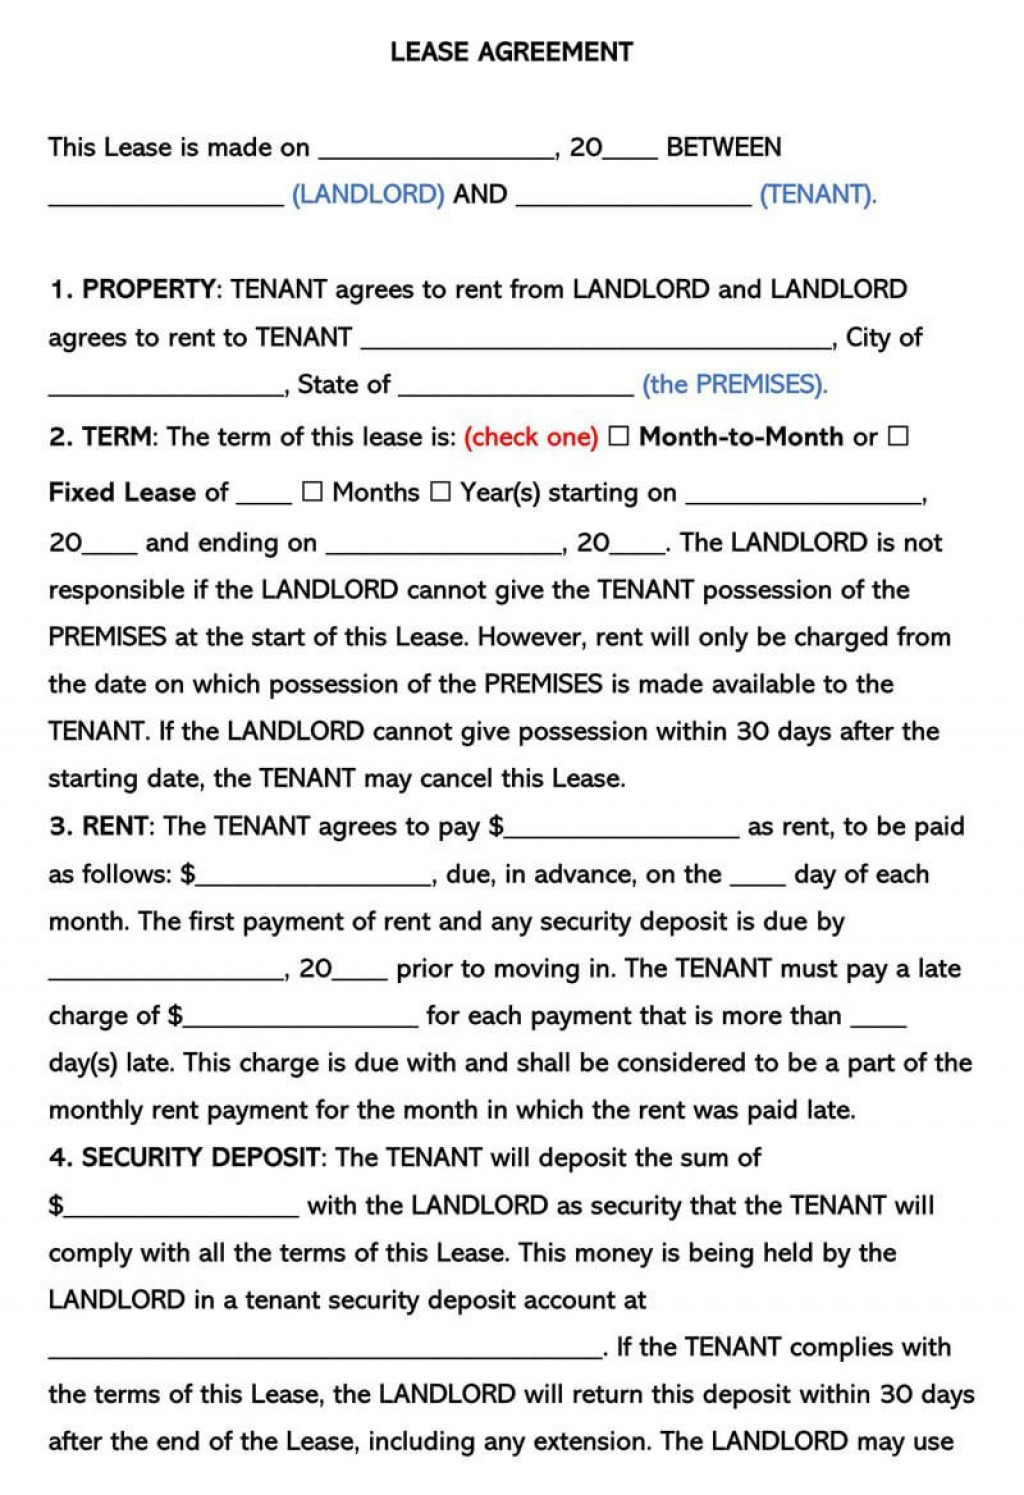 004 Rare Free Template For Rental Lease Agreement Sample  Printable Tenant Form South AfricaLarge